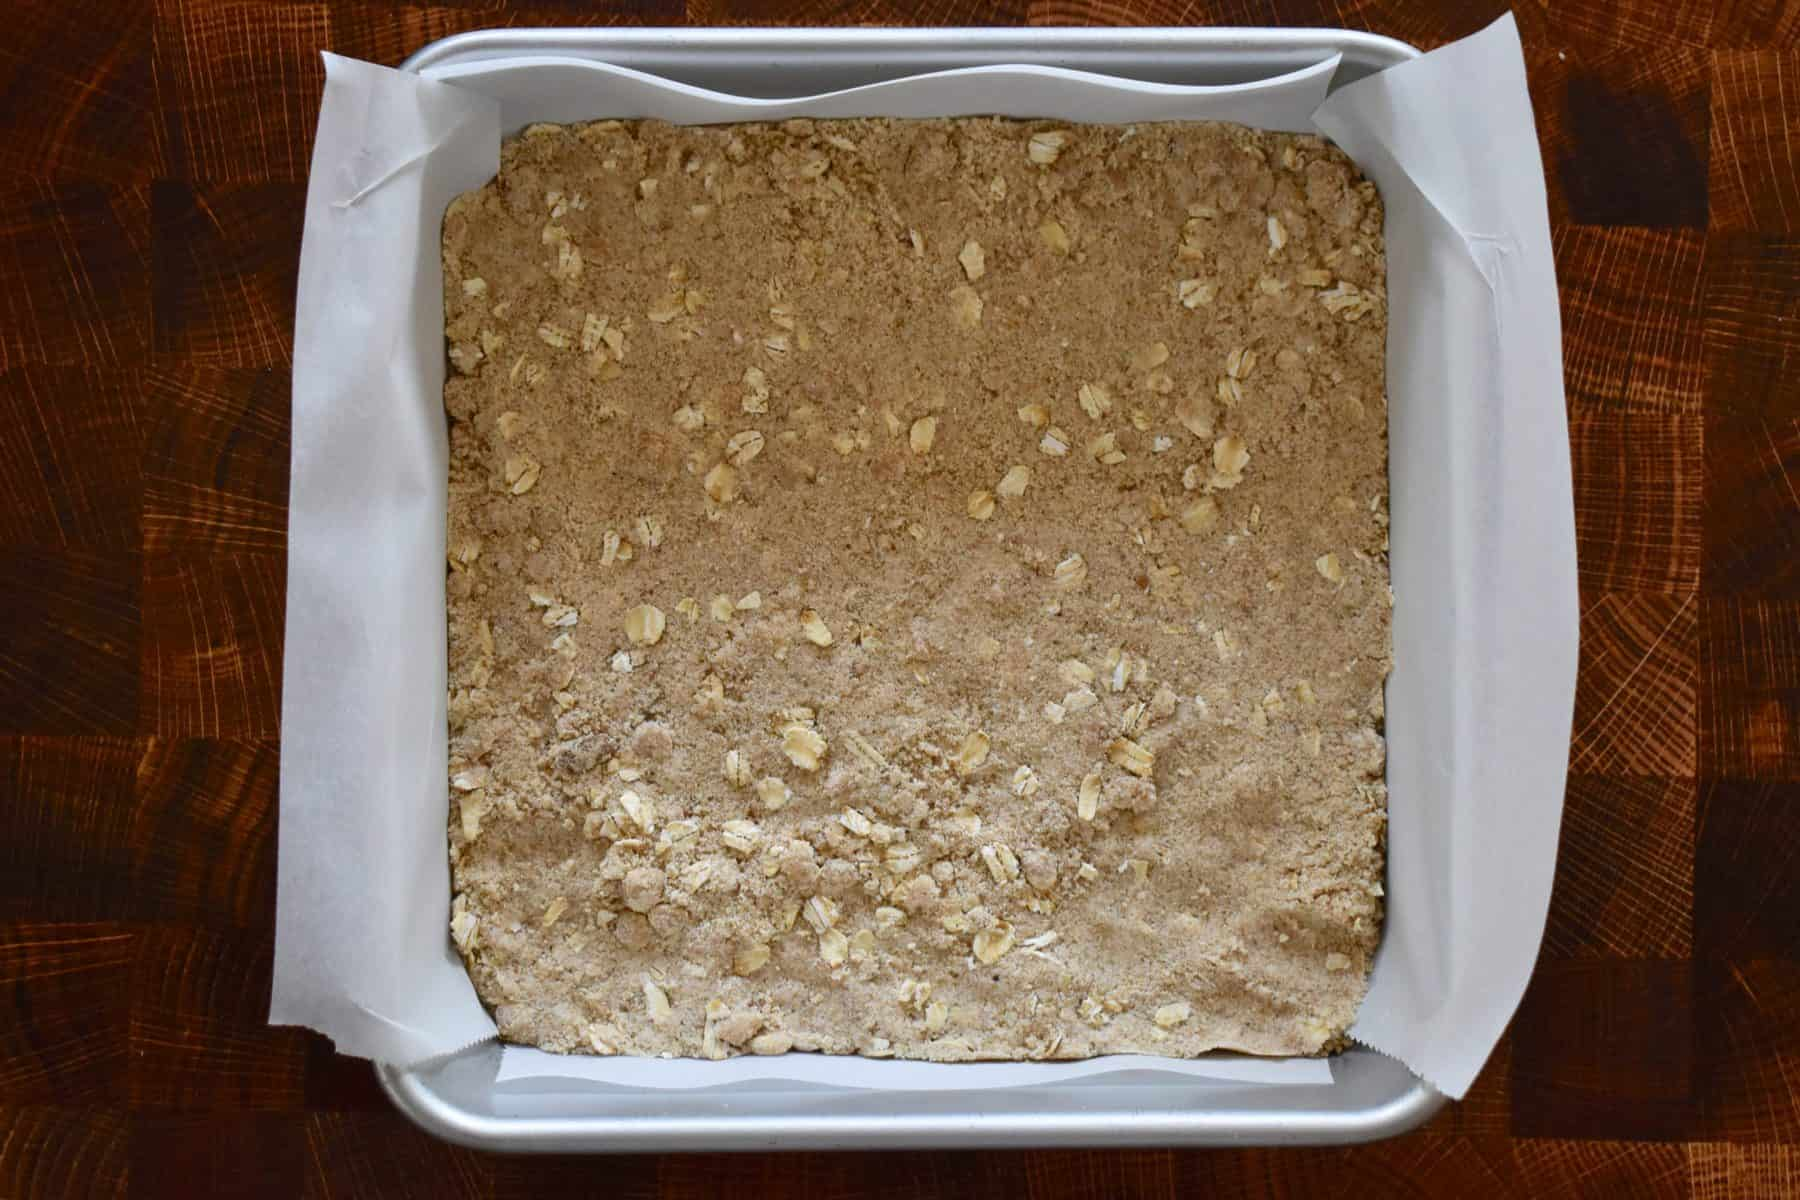 dough firmly pressed into a lined baking pan.